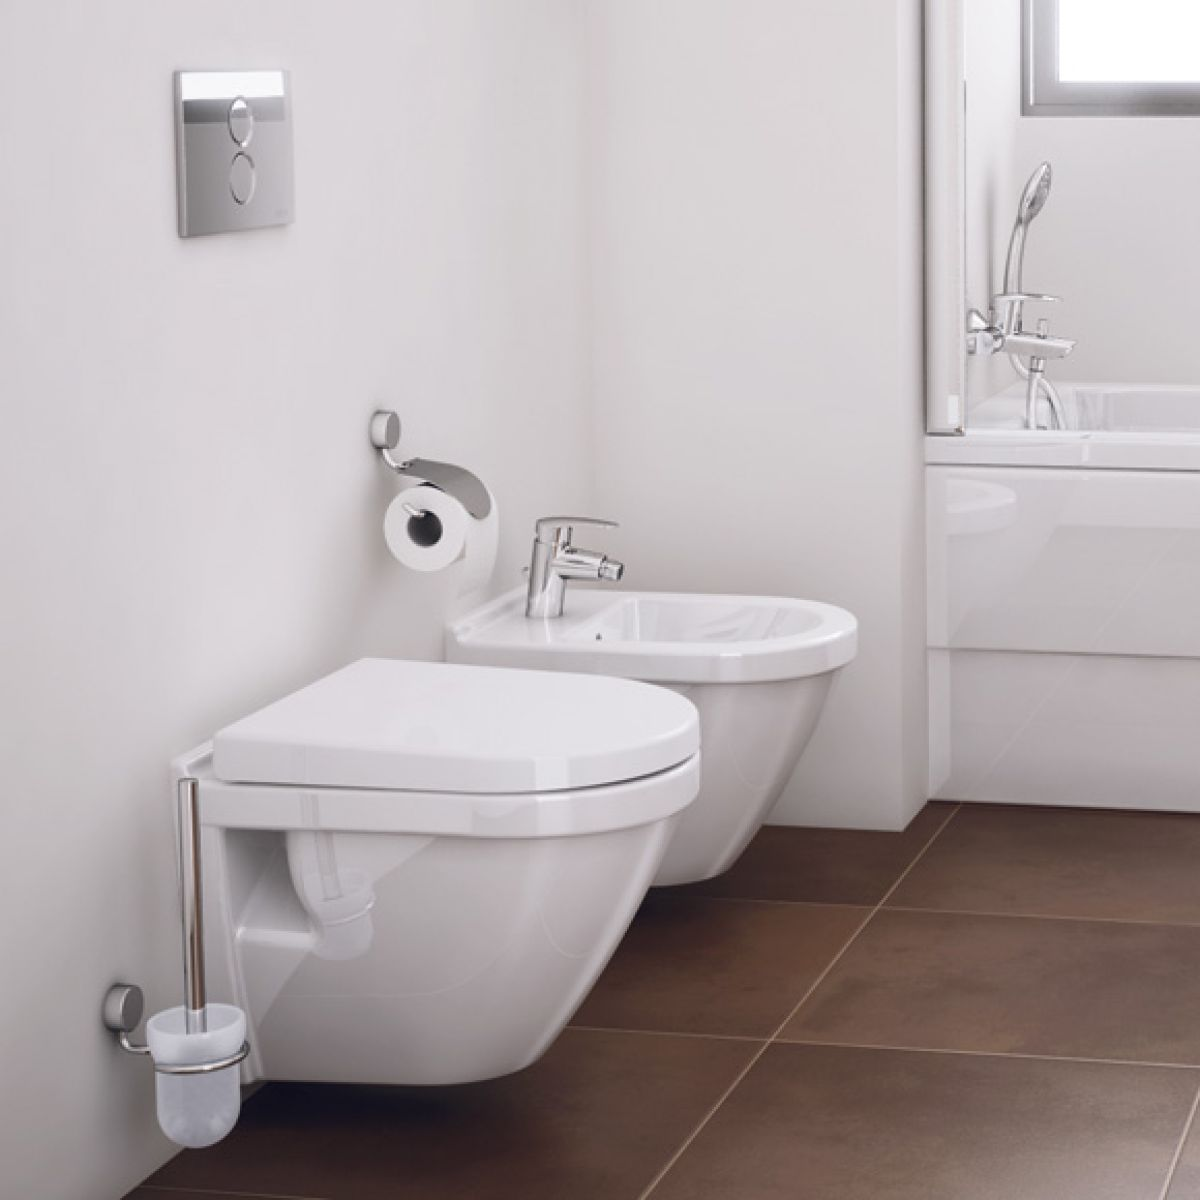 vitra s50 wall hung bidet uk bathrooms. Black Bedroom Furniture Sets. Home Design Ideas